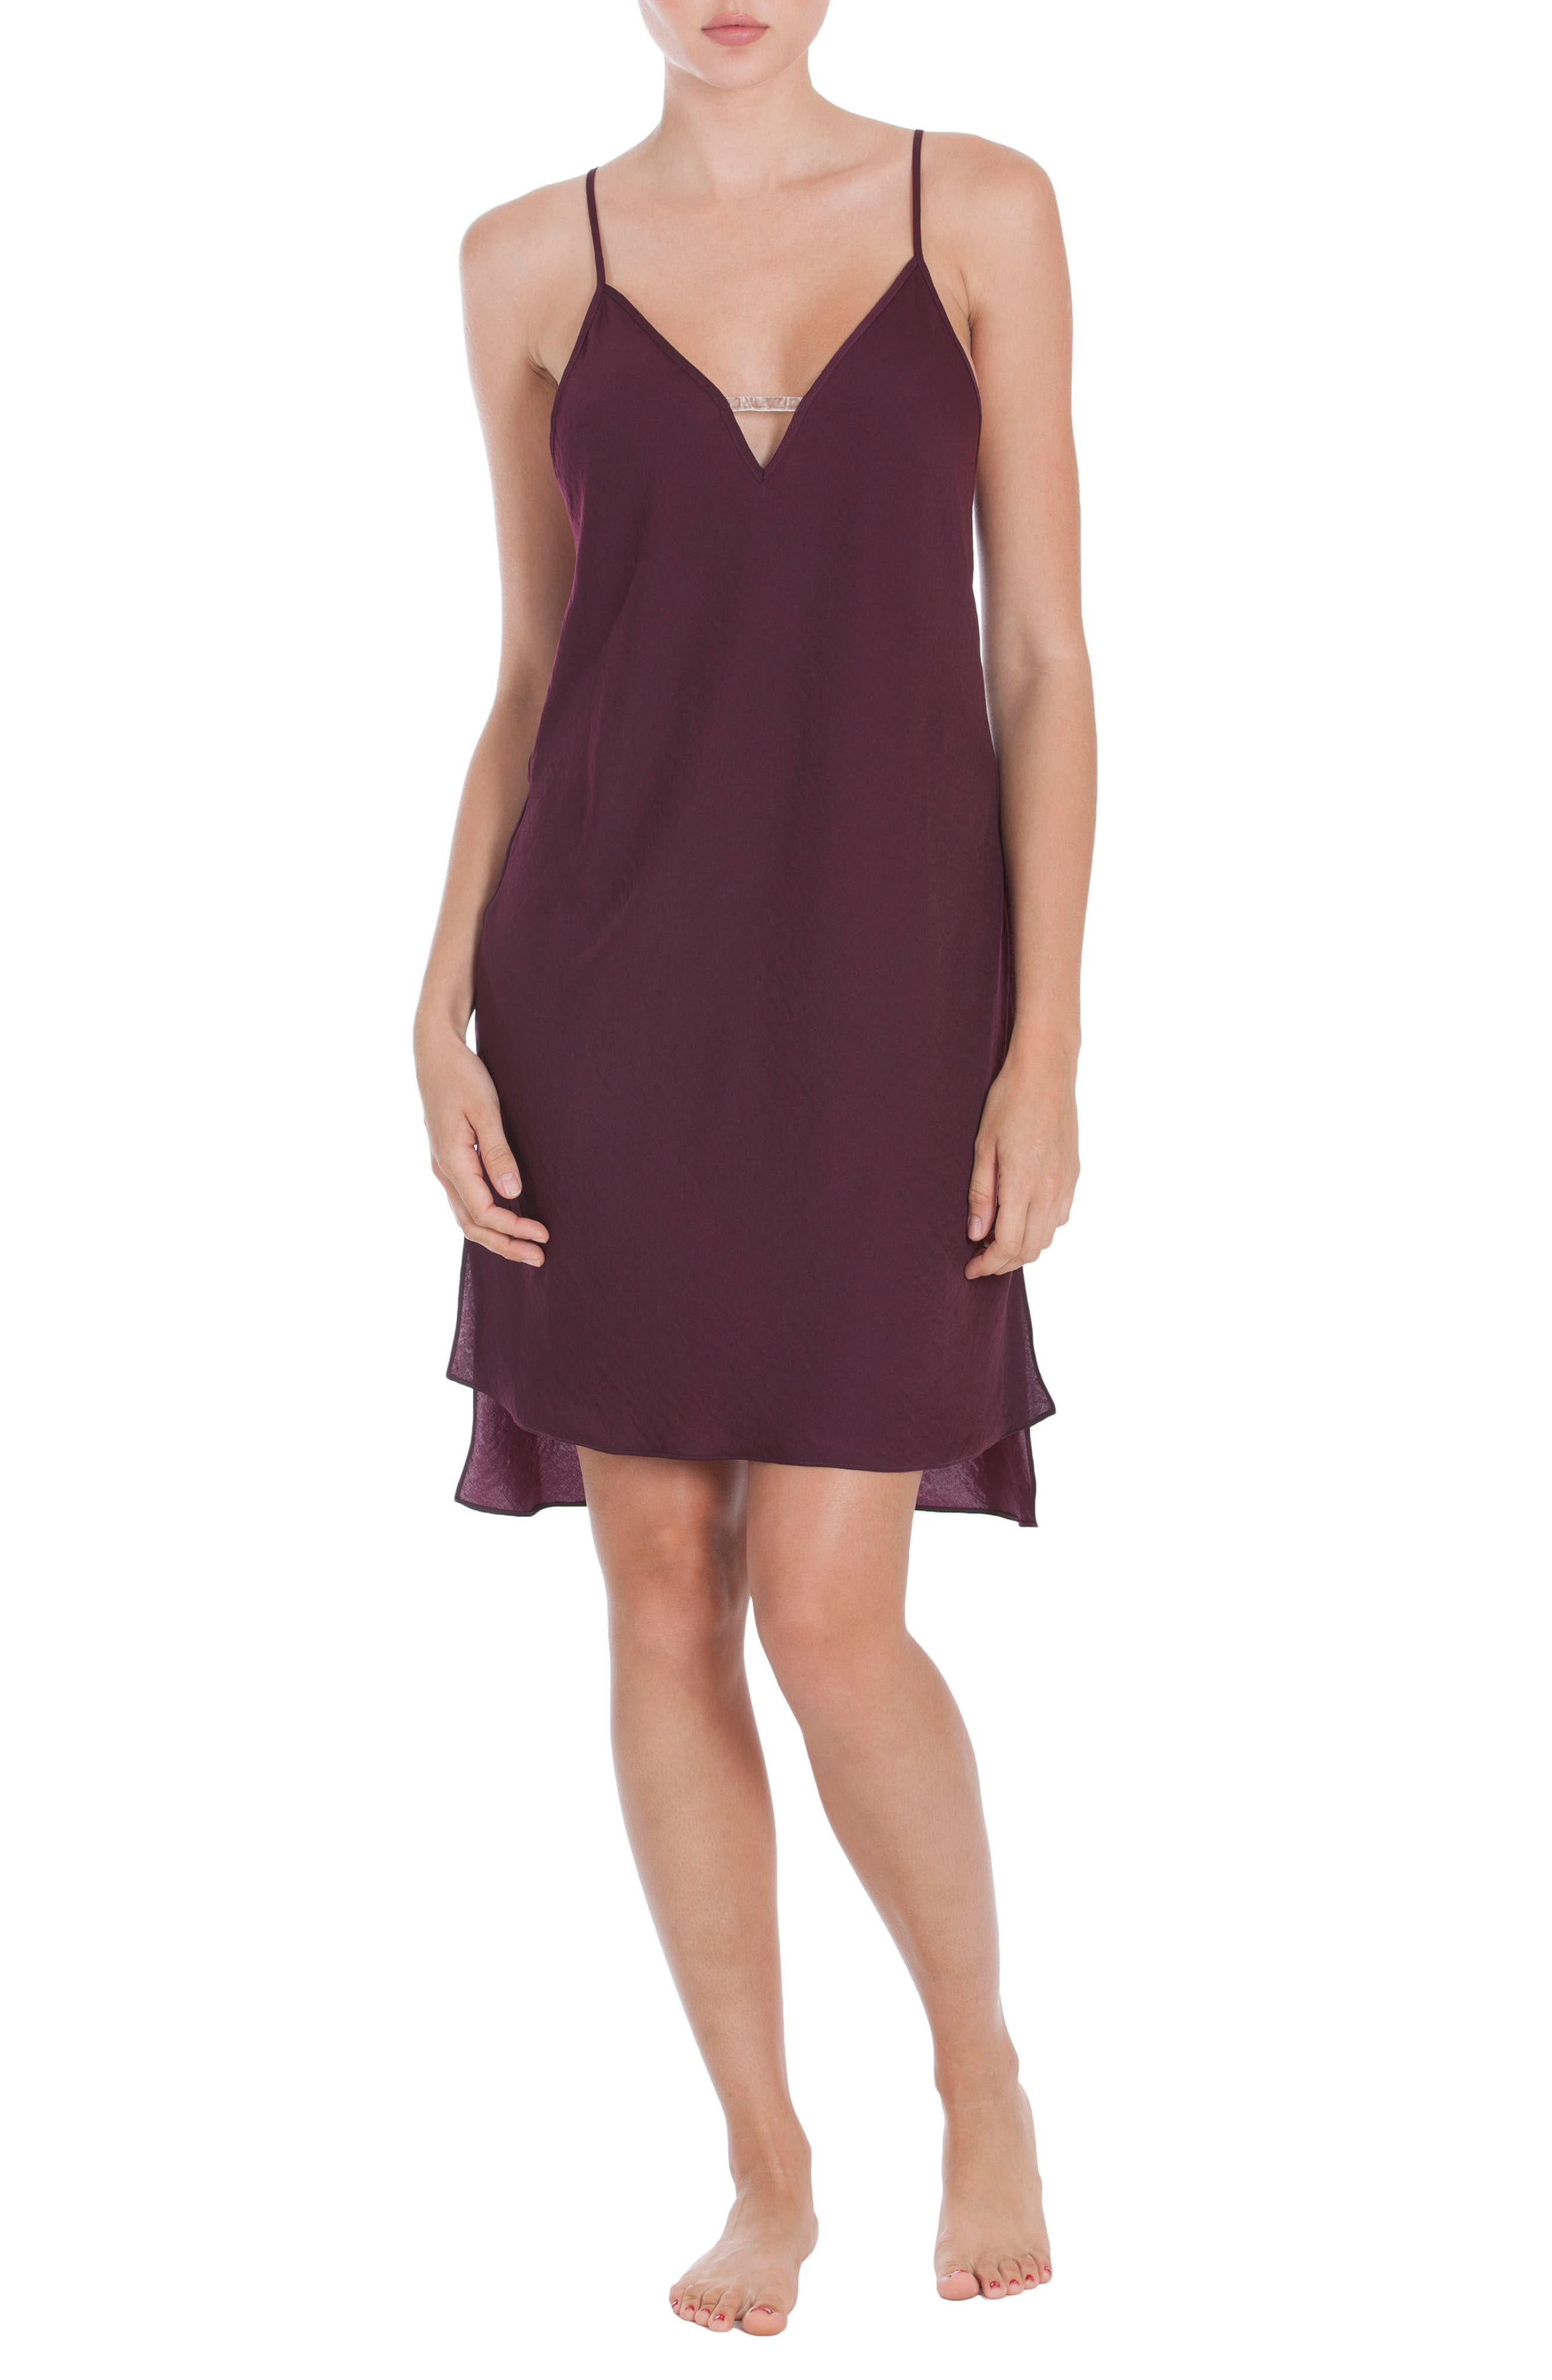 Satin Nightgown,                             Alternate thumbnail 4, color,                             Wine